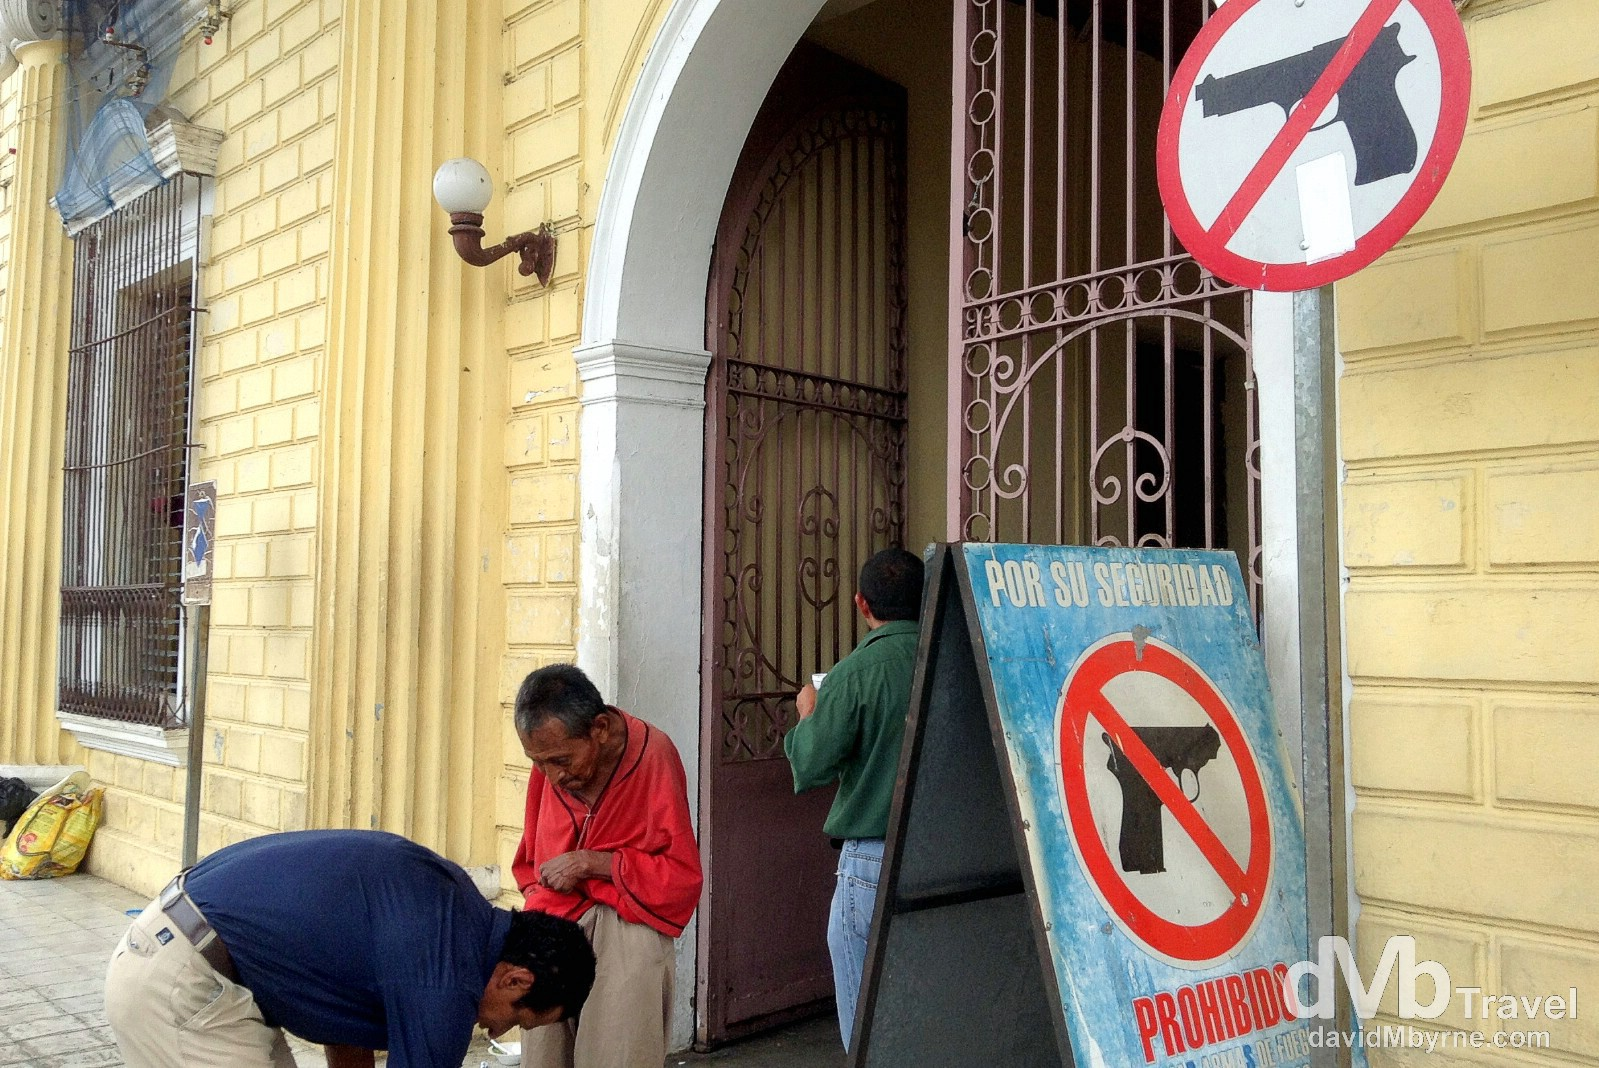 No guns allowed. Outside Santa Ana City Hall, Santa Ana, western El Salvador. May 27th 2013.